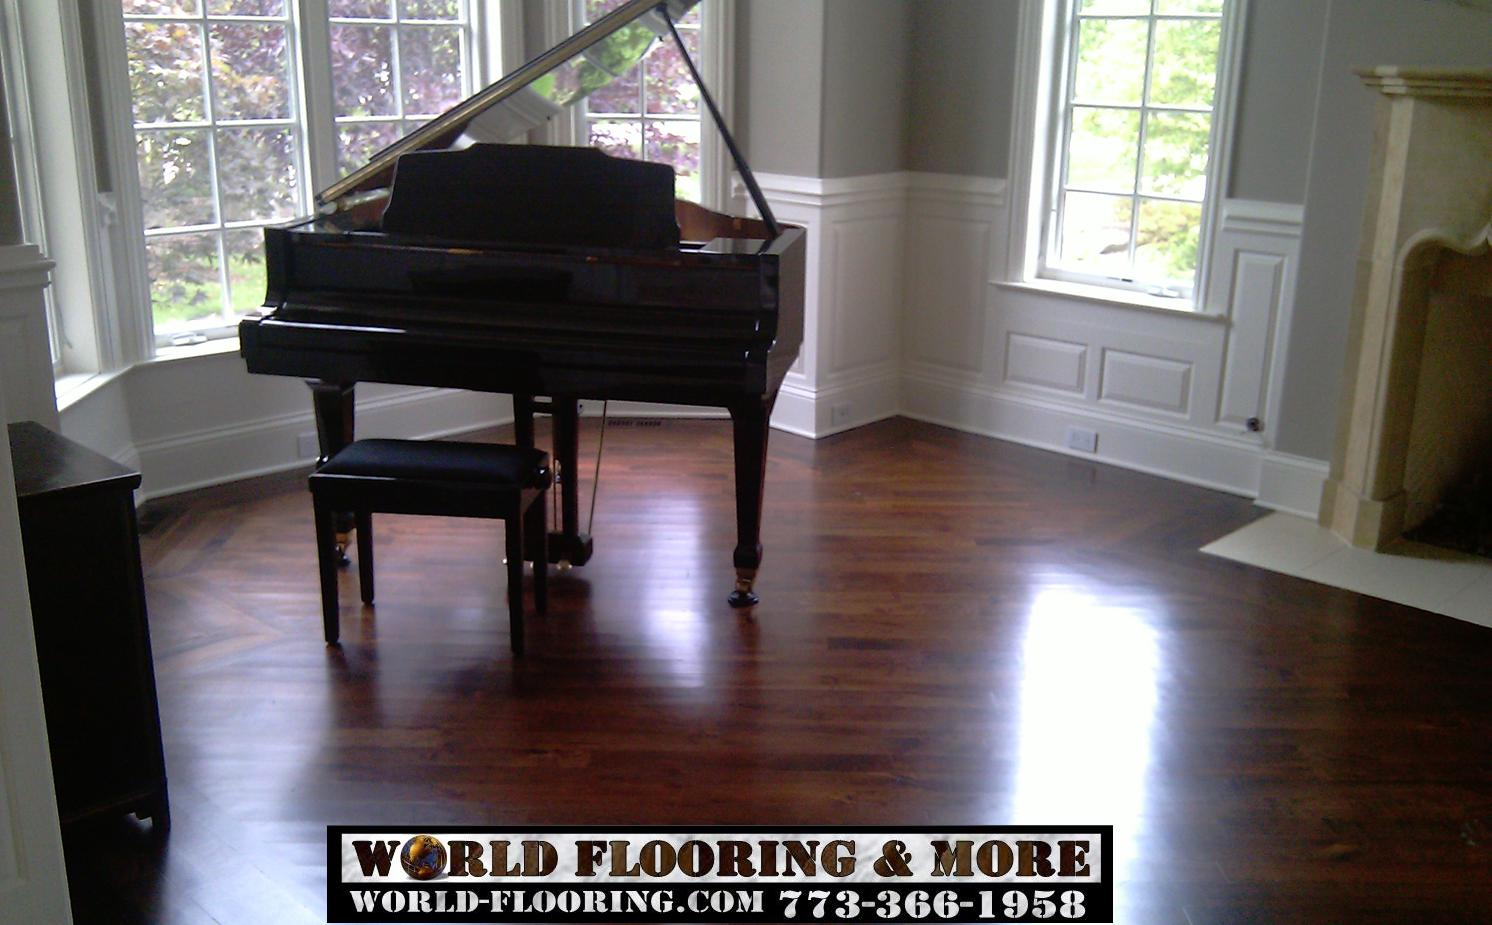 Hardwood Floor Installation Repasir Staining Sanding Refinishing World Flooring More 773 366 1958